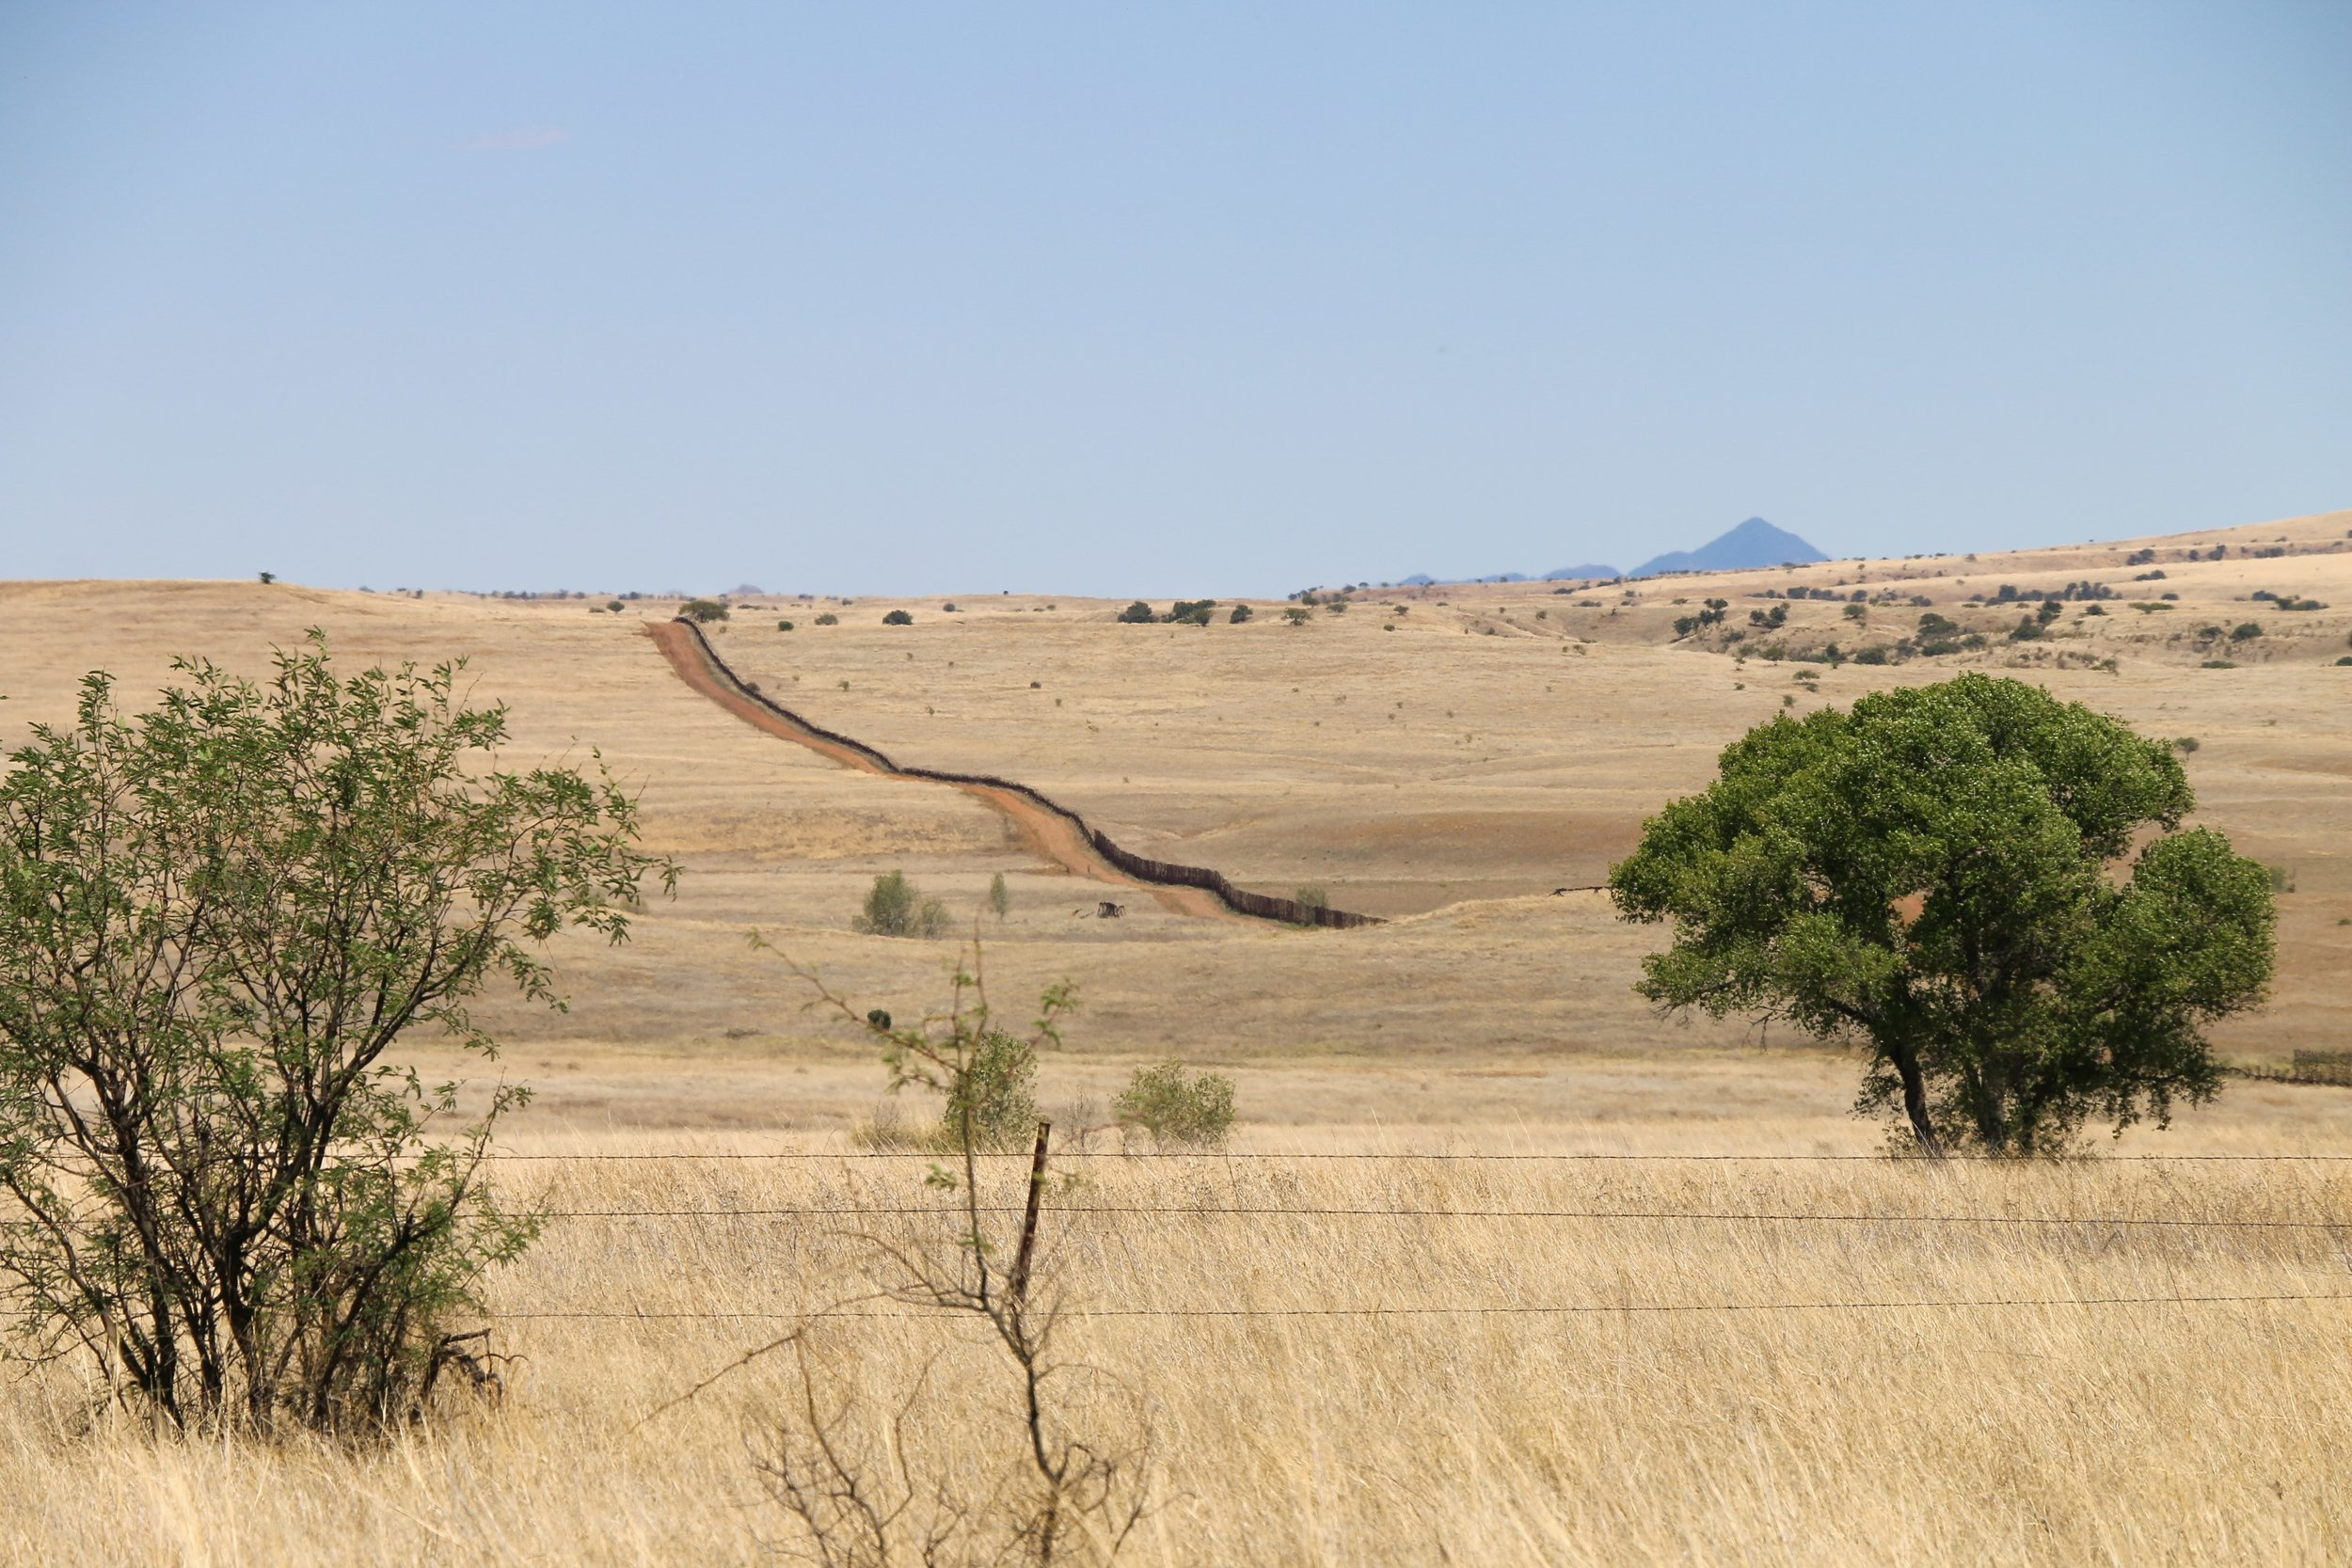 The border fence as seen from near Lochiel.